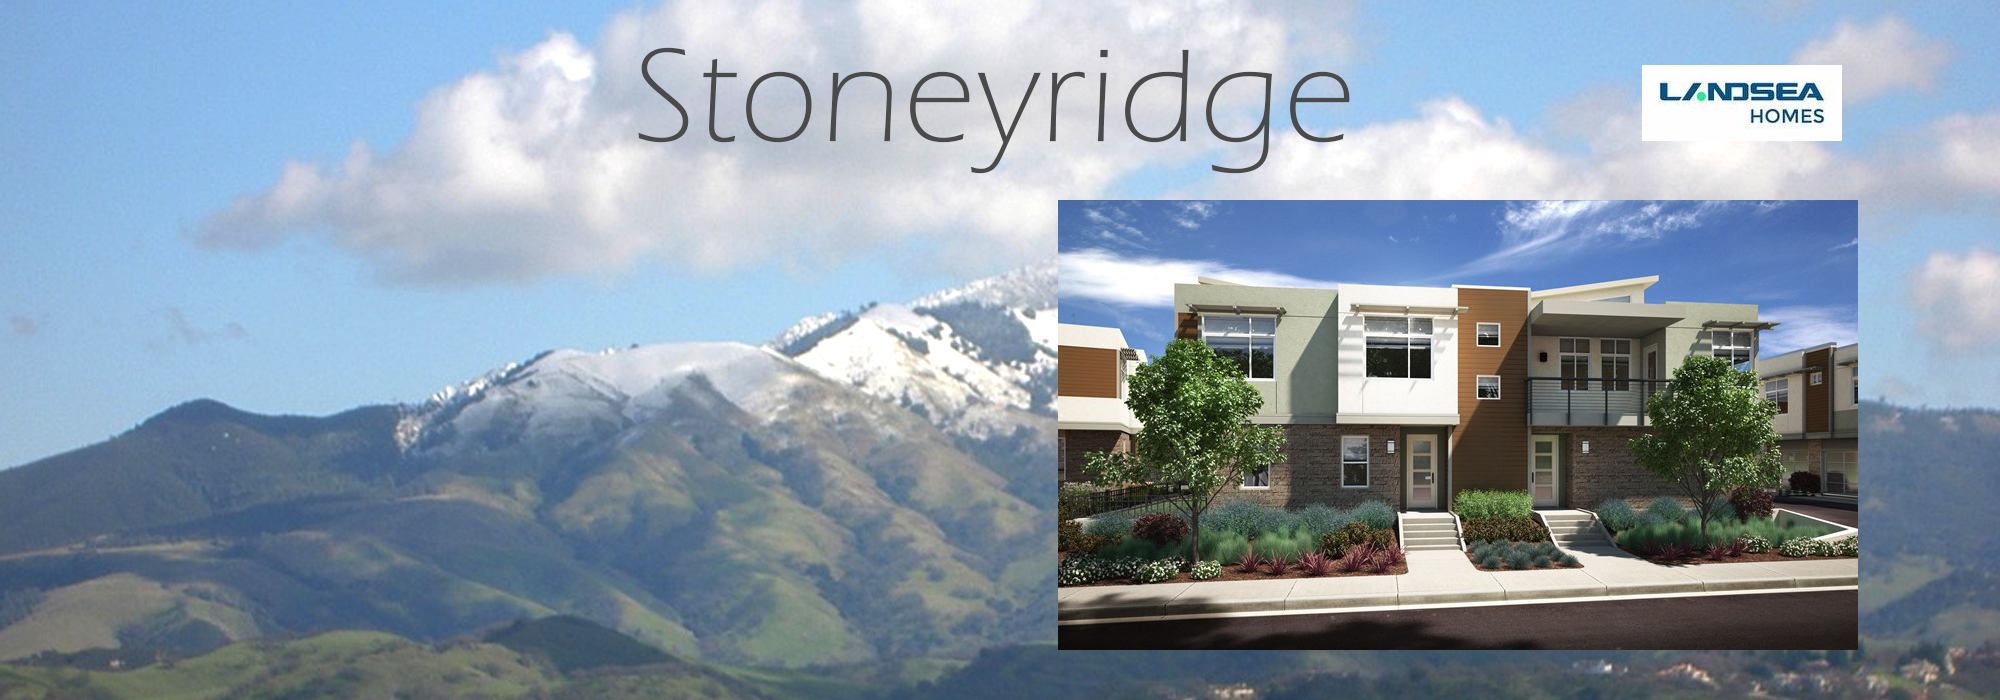 Discover Stoneyridge in Walnut Creek